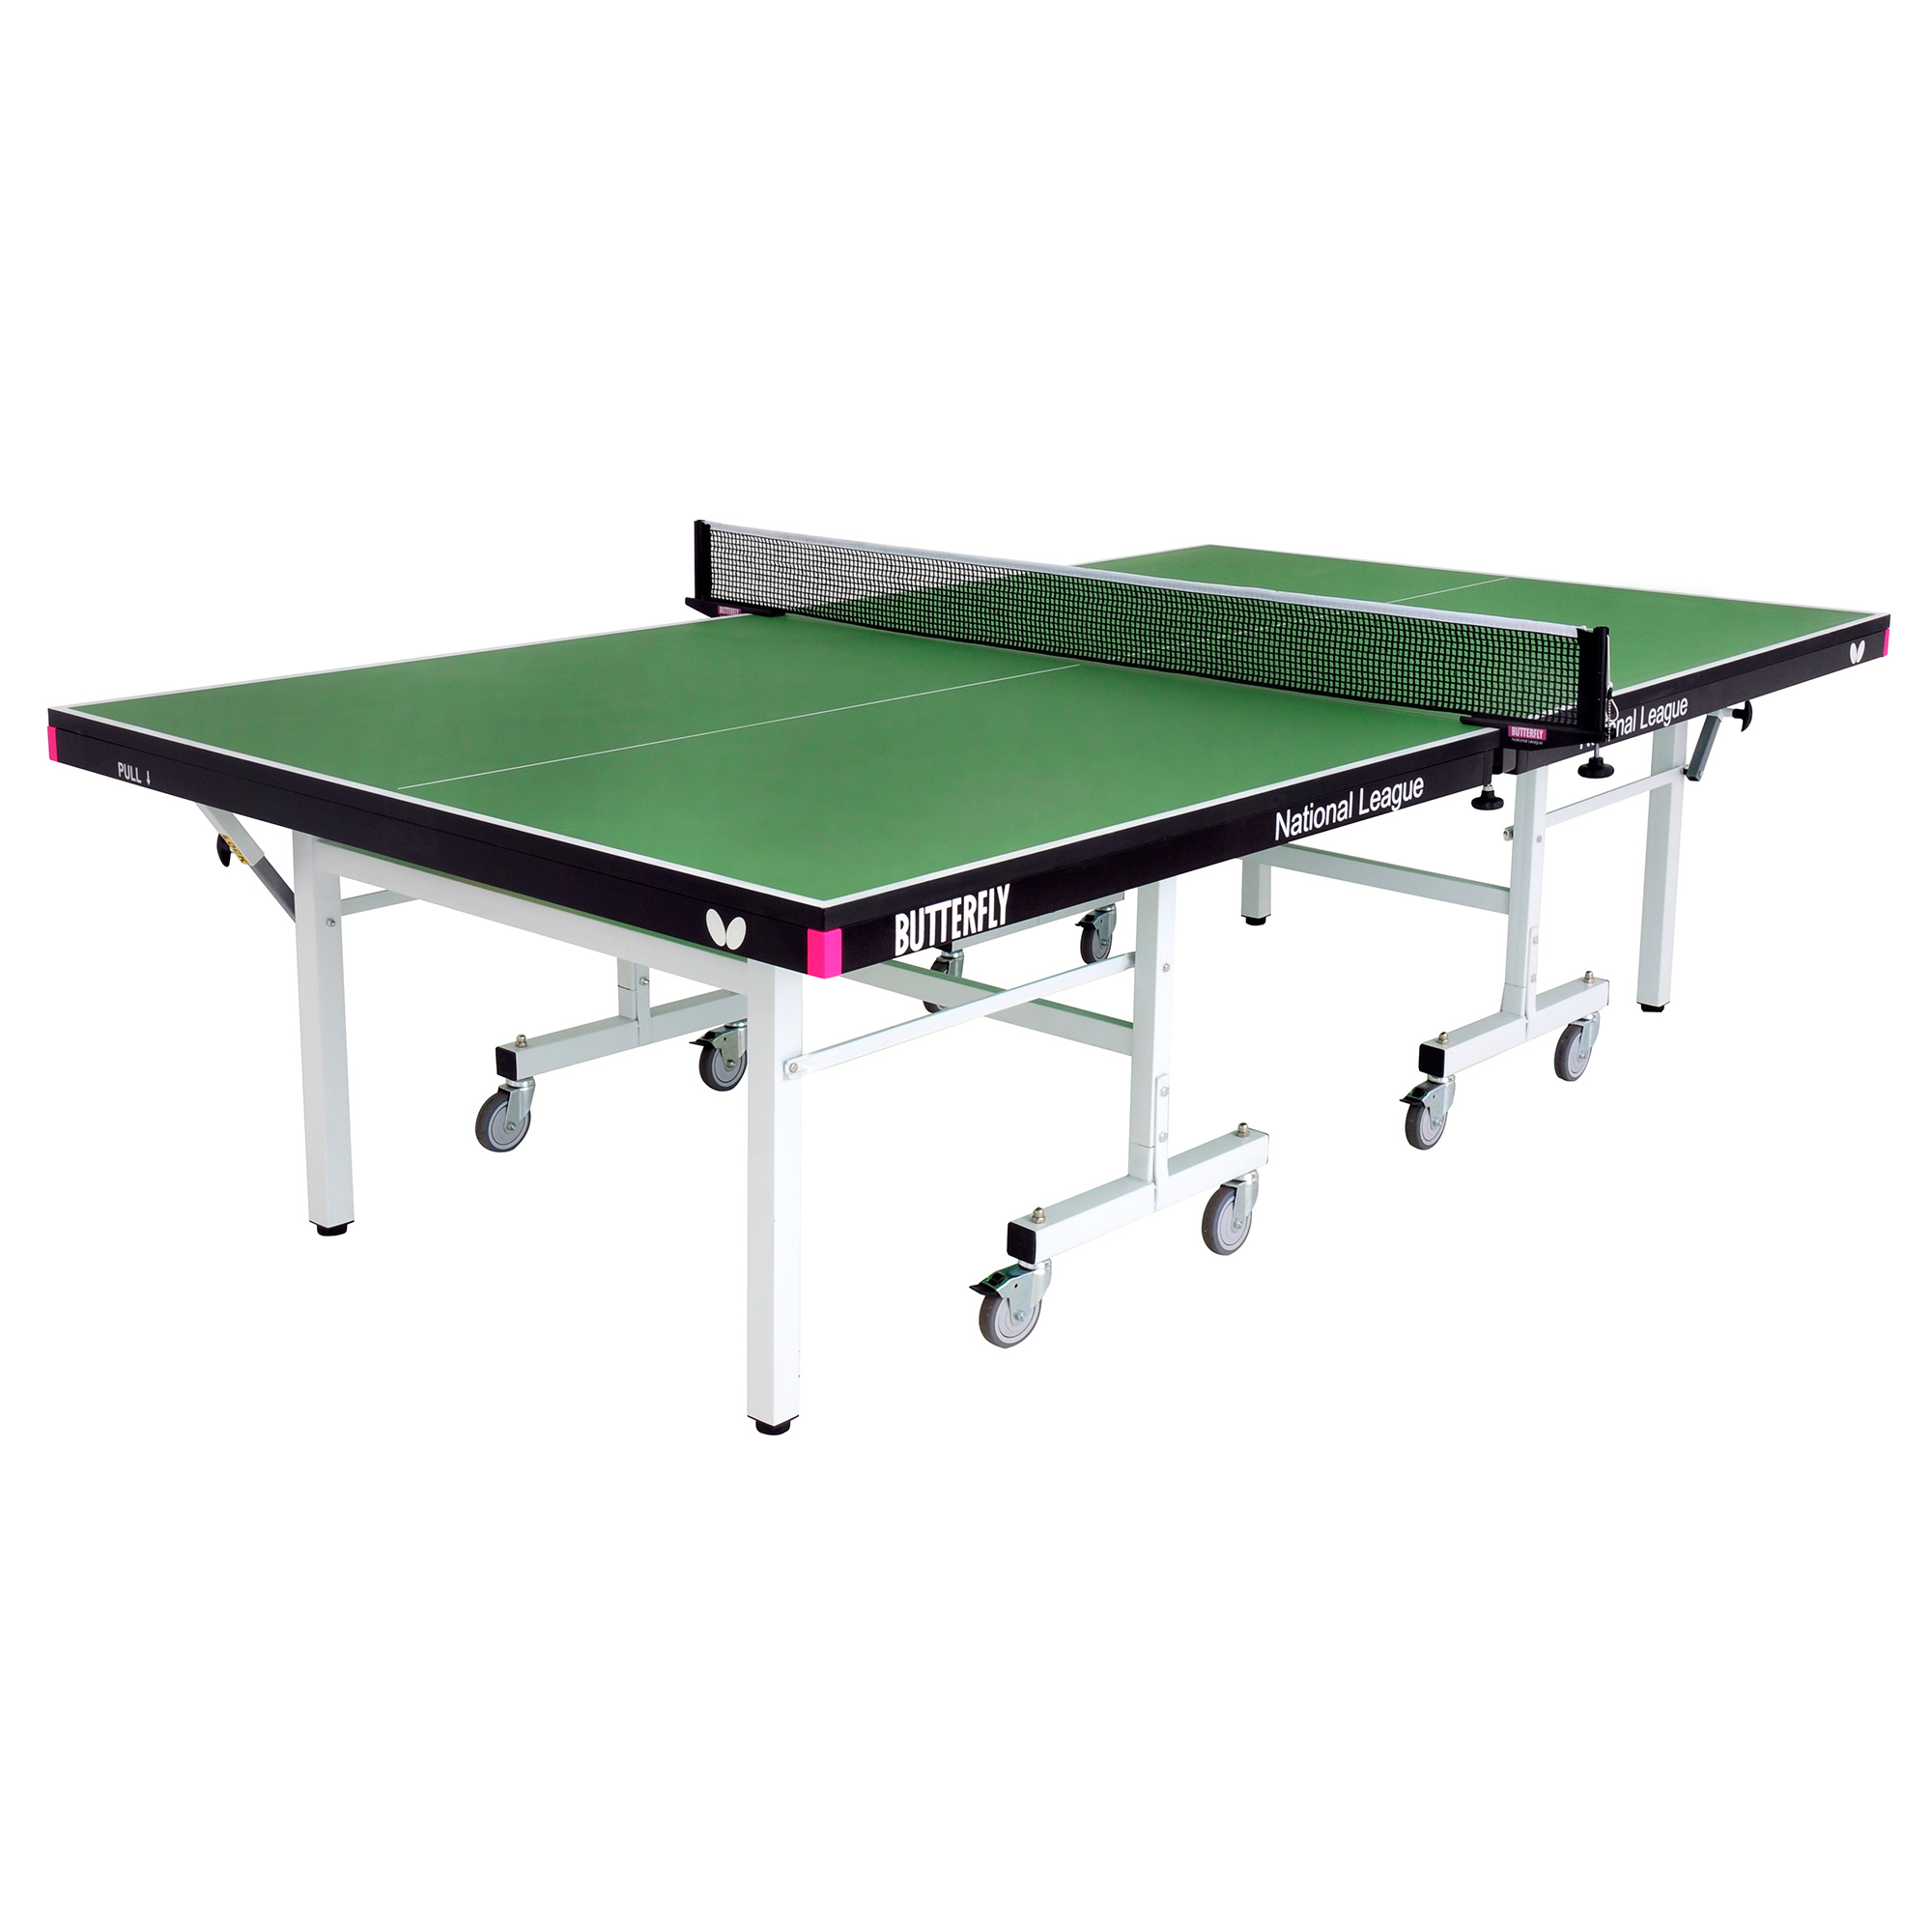 Butterfly National League 25 Rollaway Indoor Table Tennis Table  Green